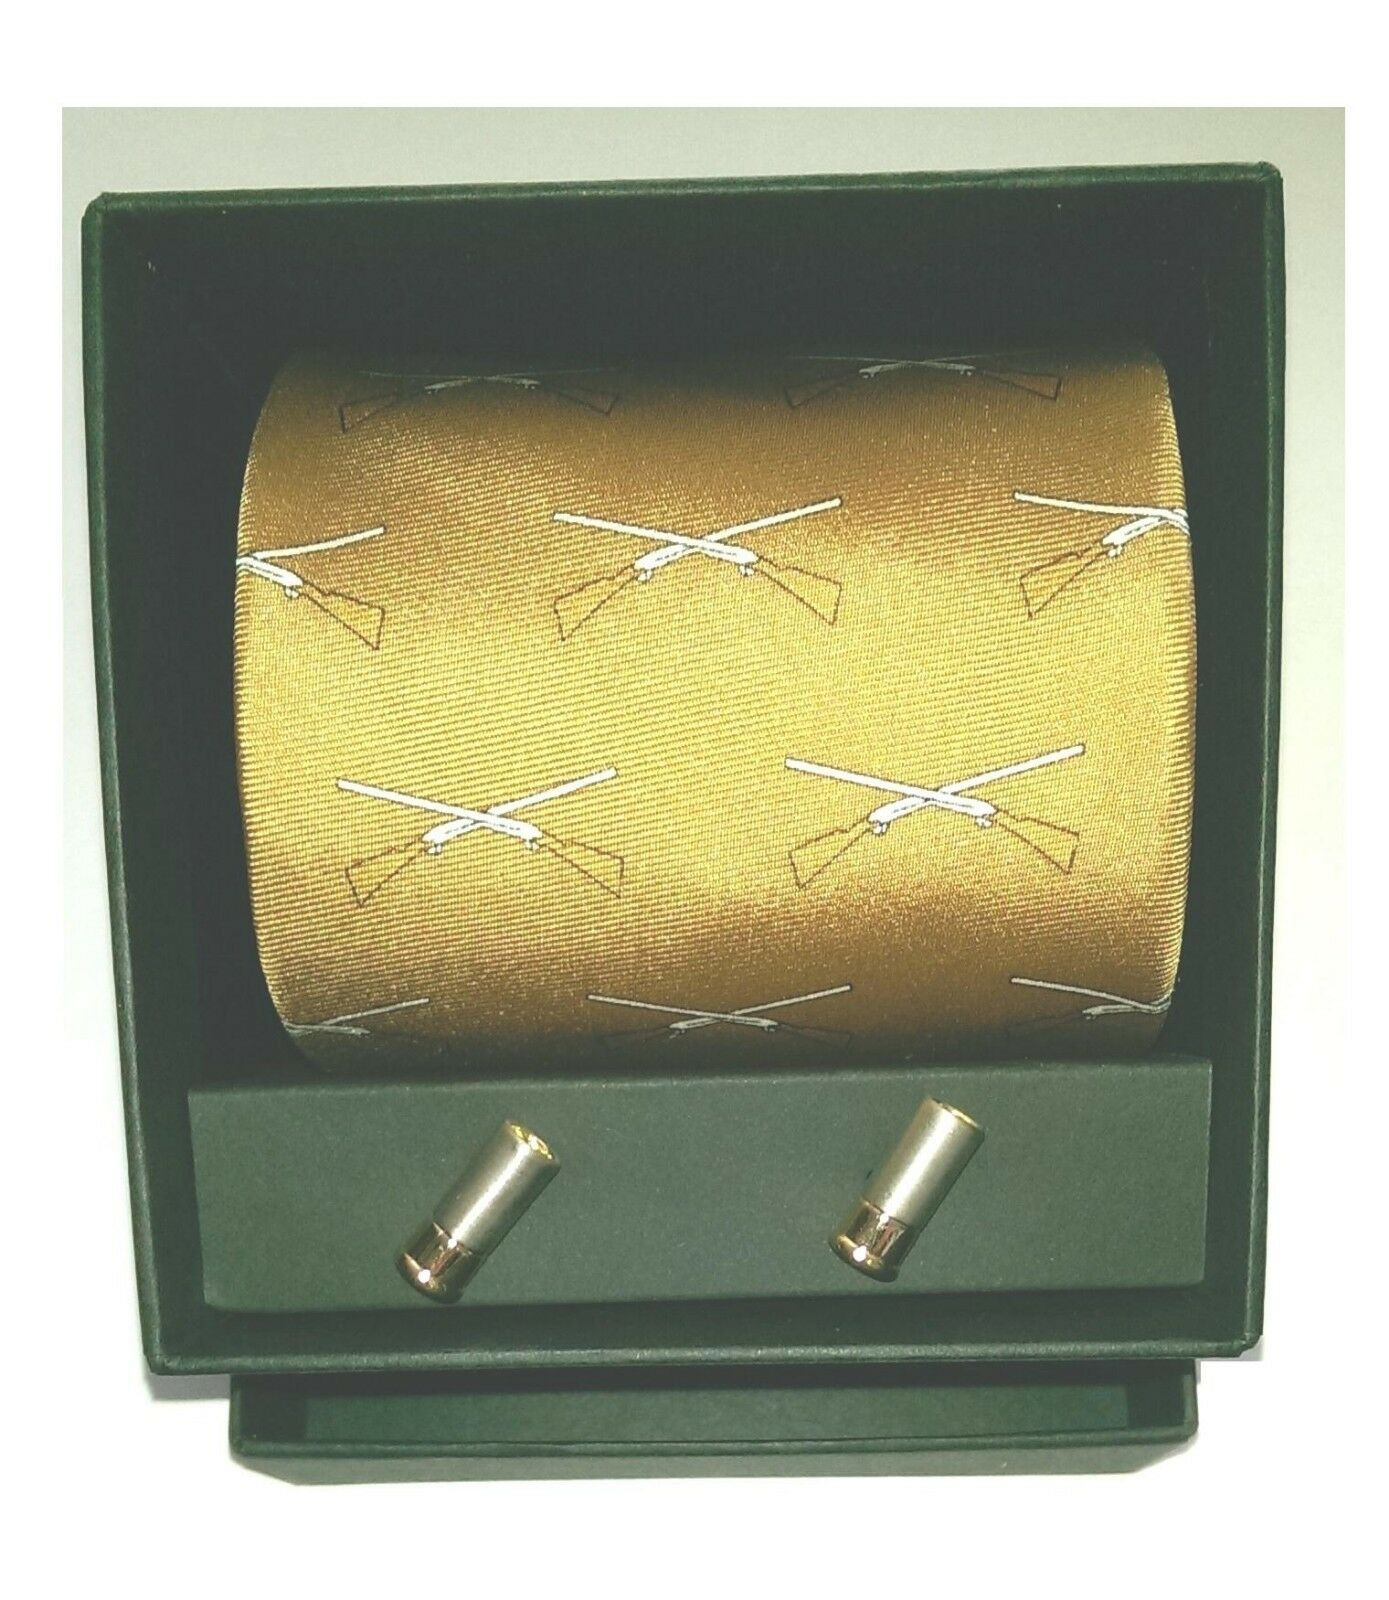 Soprano Clay Pigeon Shooting Tie with shotgun cartridge cufflinks in a gift box